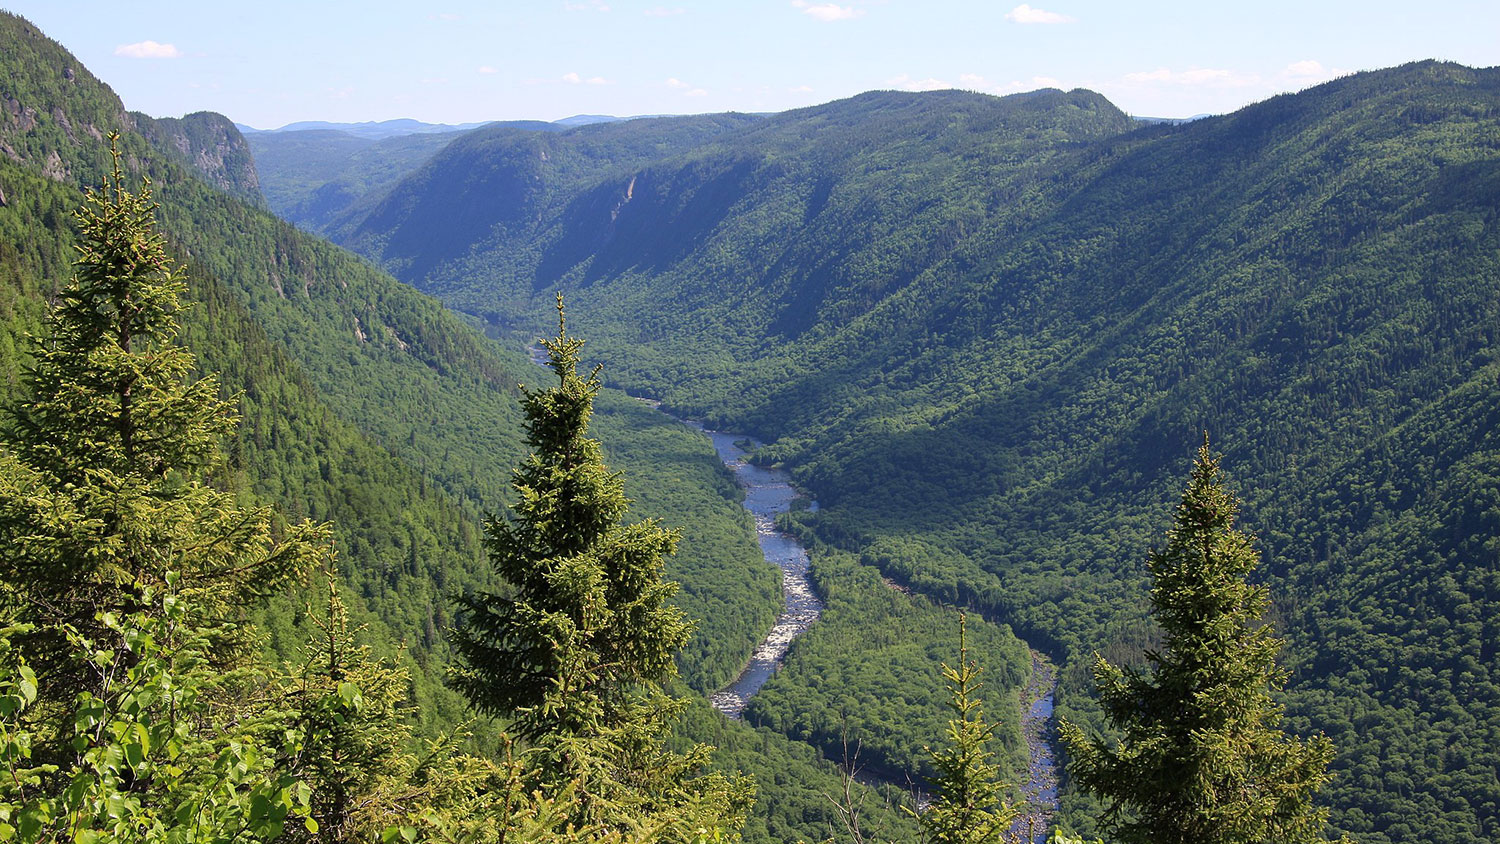 The Jacques-Cartier River runs between forested ridges in Jacques-Cartier National Park in Québec, Canada.